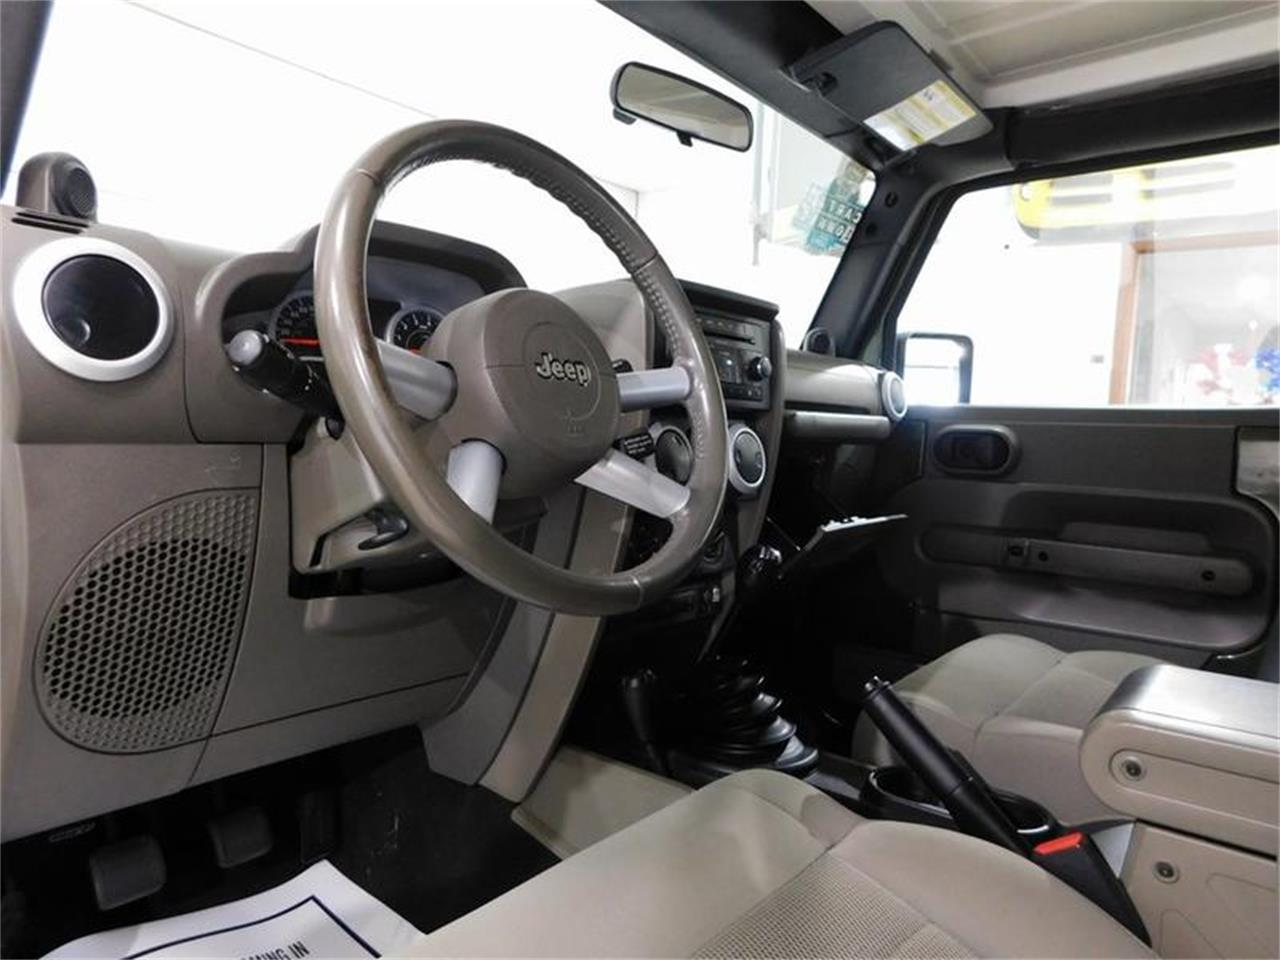 2008 Jeep Wrangler (CC-1226118) for sale in Hamburg, New York